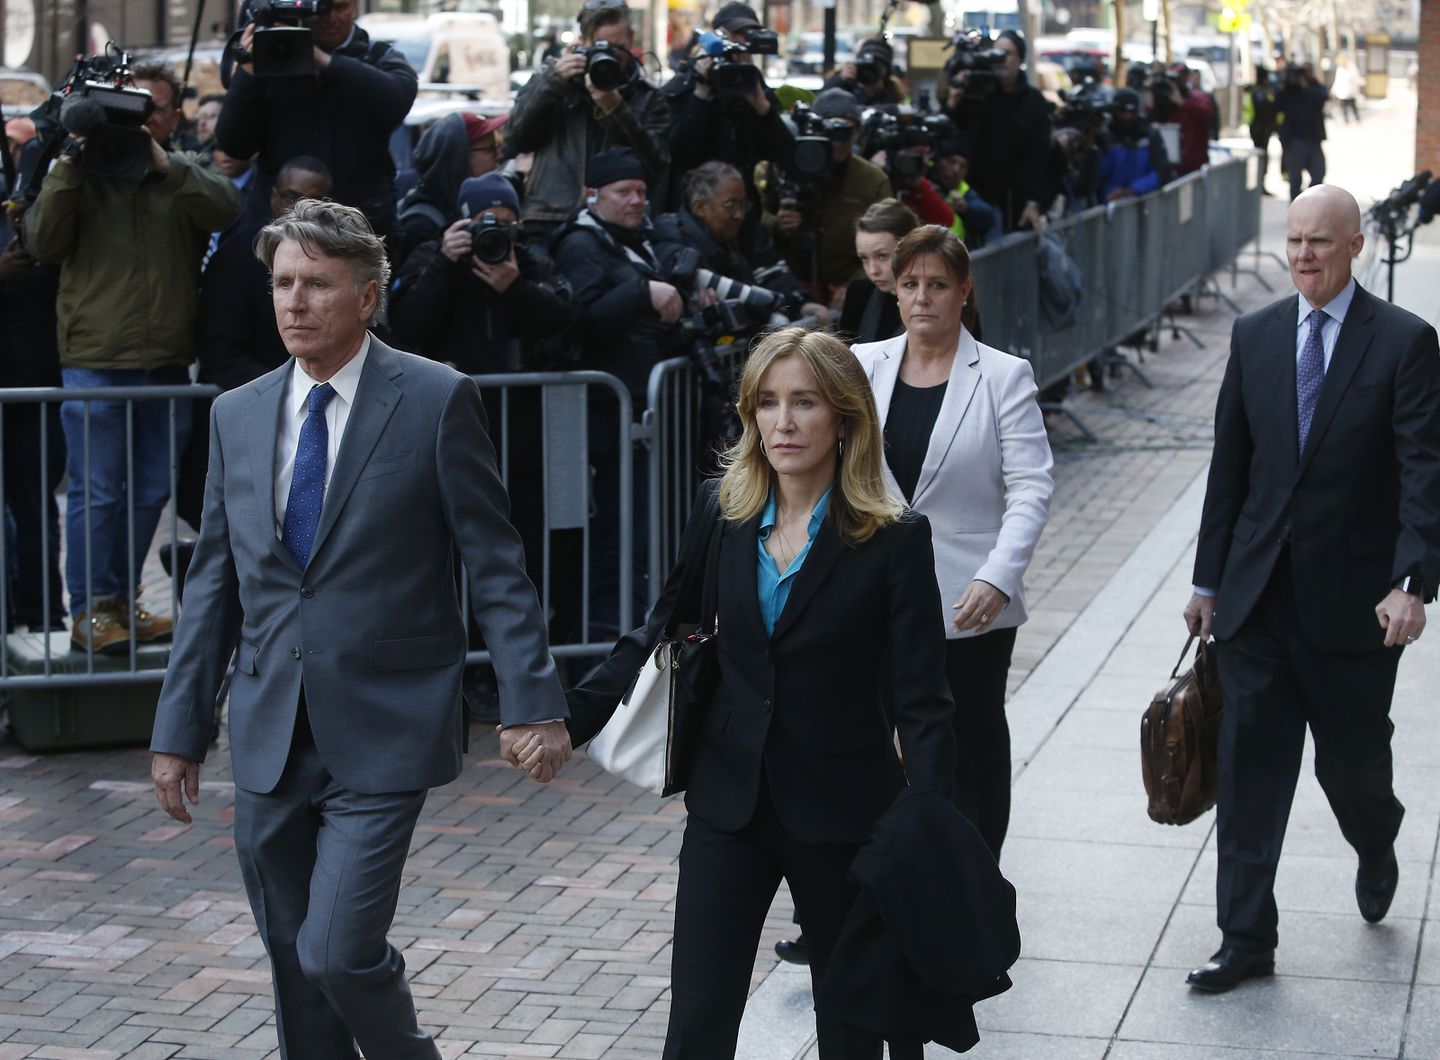 Actress Felicity Huffman set to plead guilty in nationwide college admissions scandal